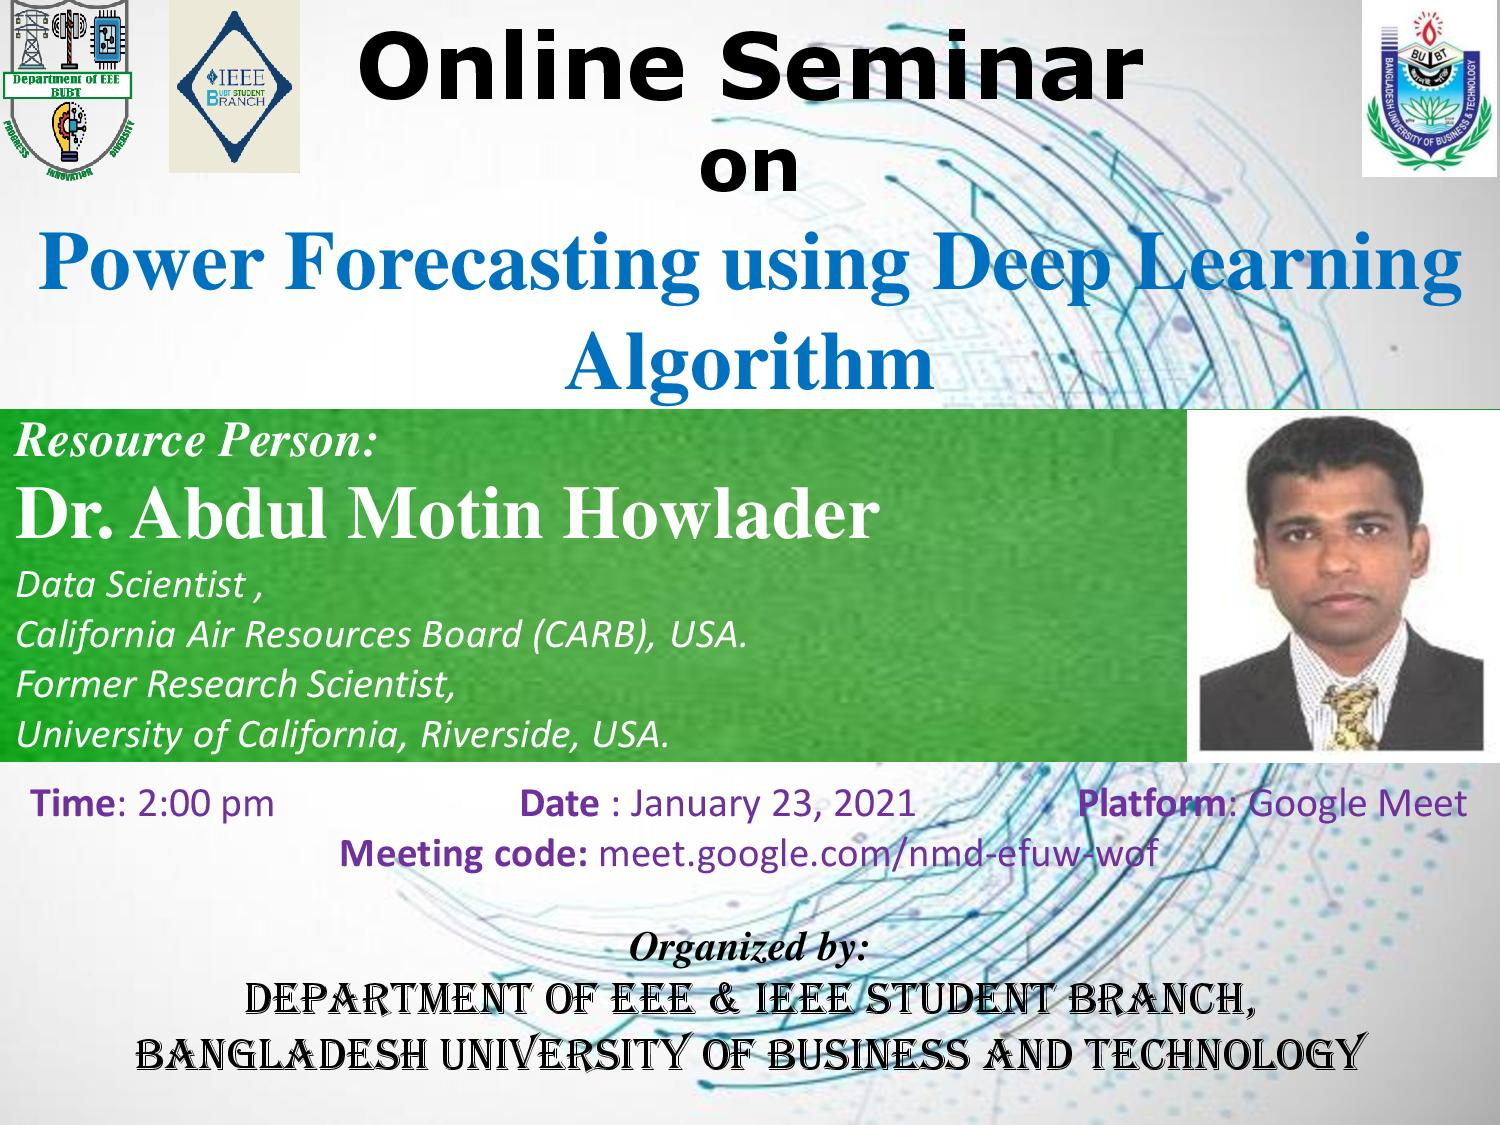 Online Seminar on Power Forecasting using Deep Learning Algorithm